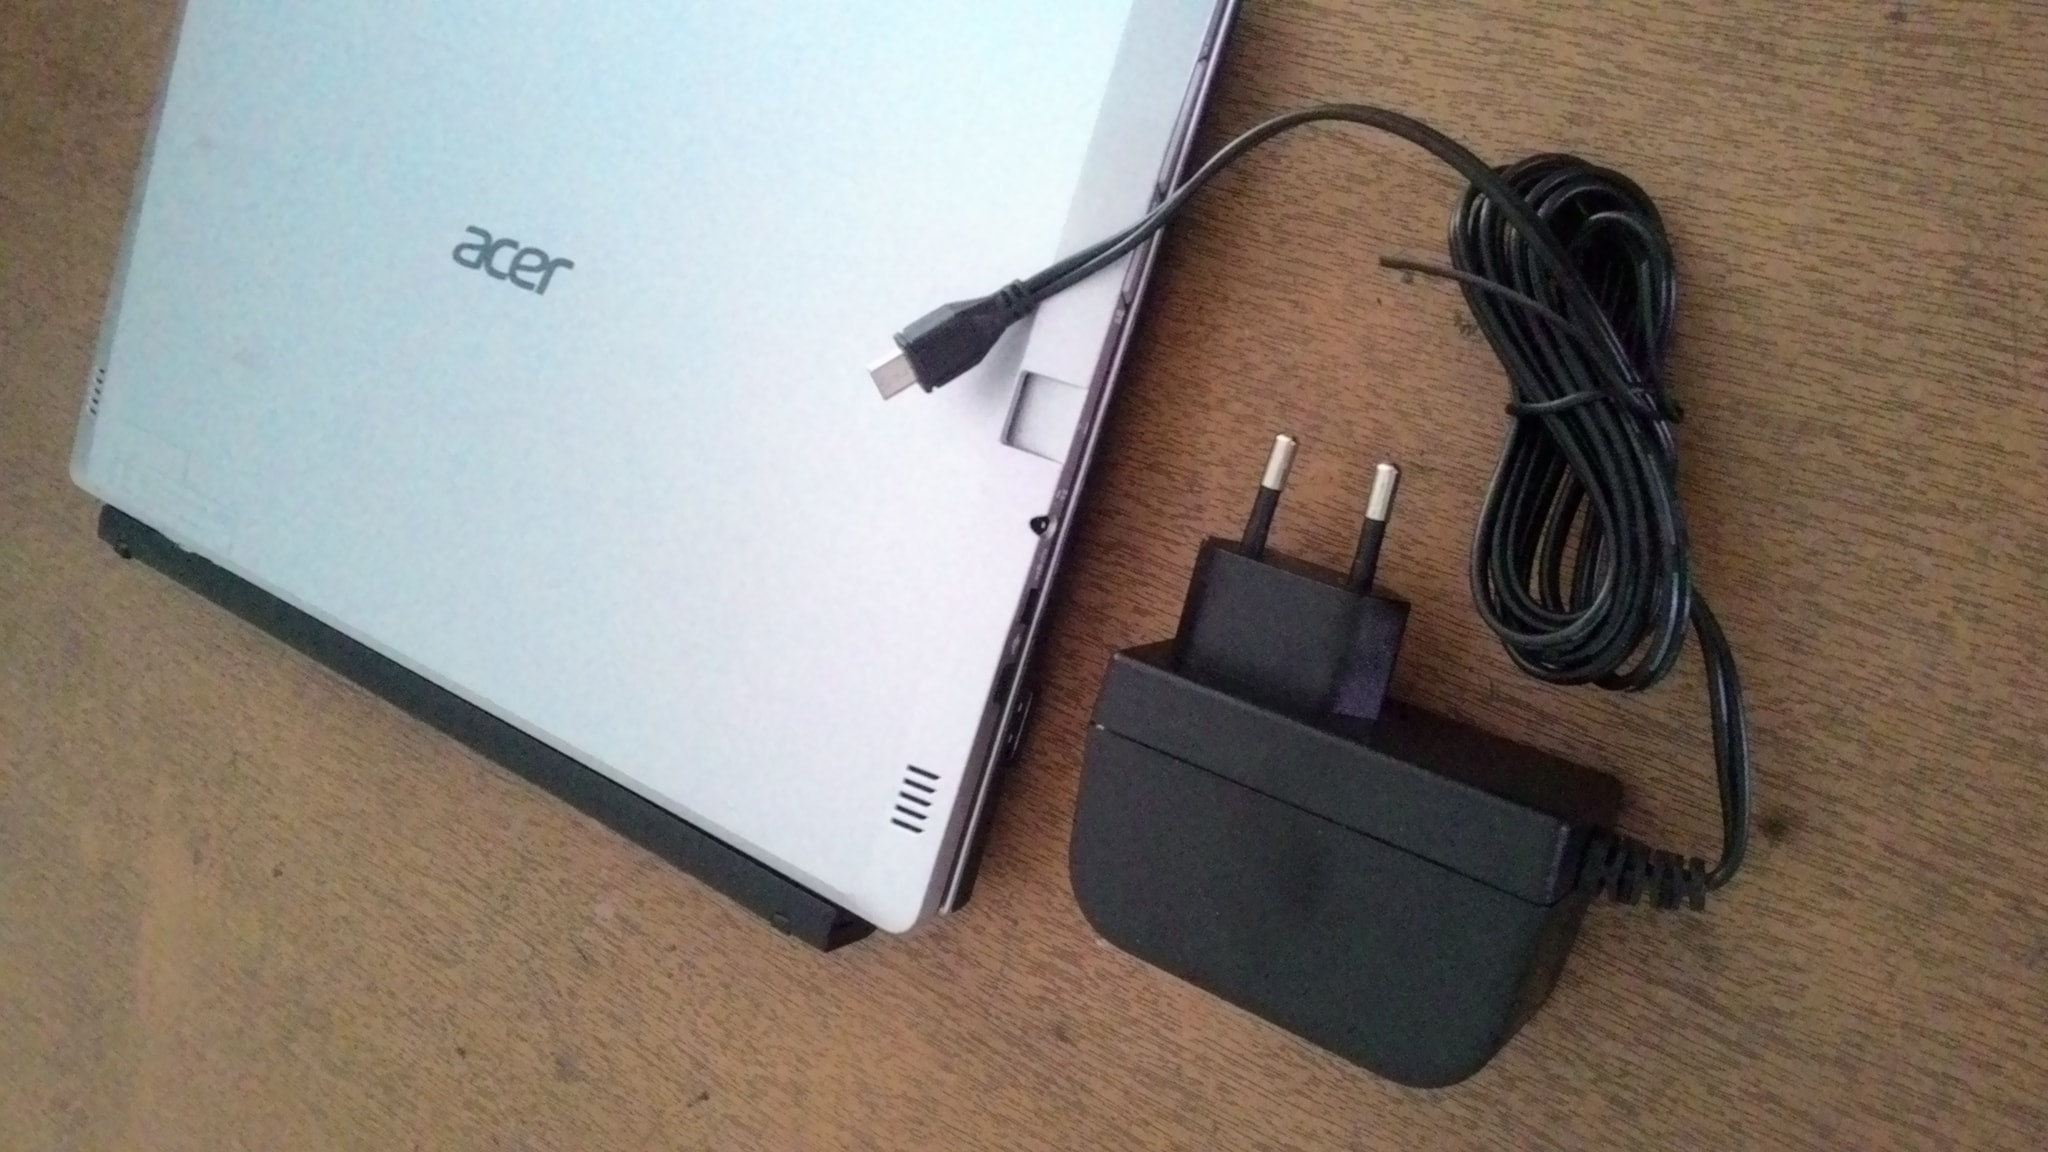 Jual Adaptor Charger Netbook Tablet Acer One 10 S100X